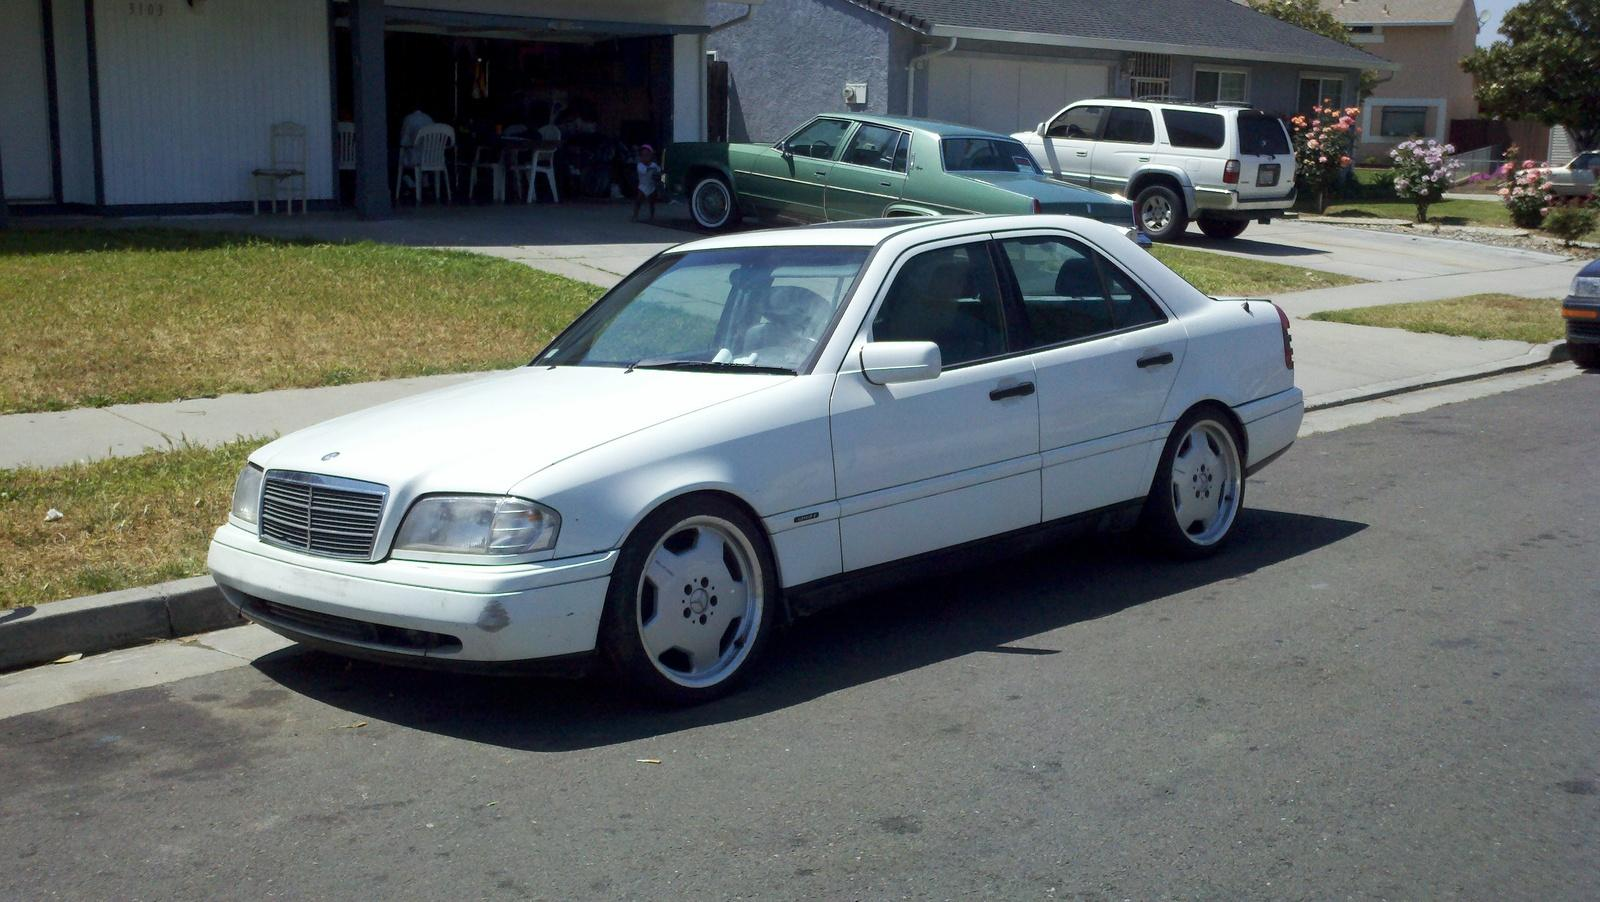 1997 MERCEDES-BENZ C36 AMG - 1600px Image #9 on